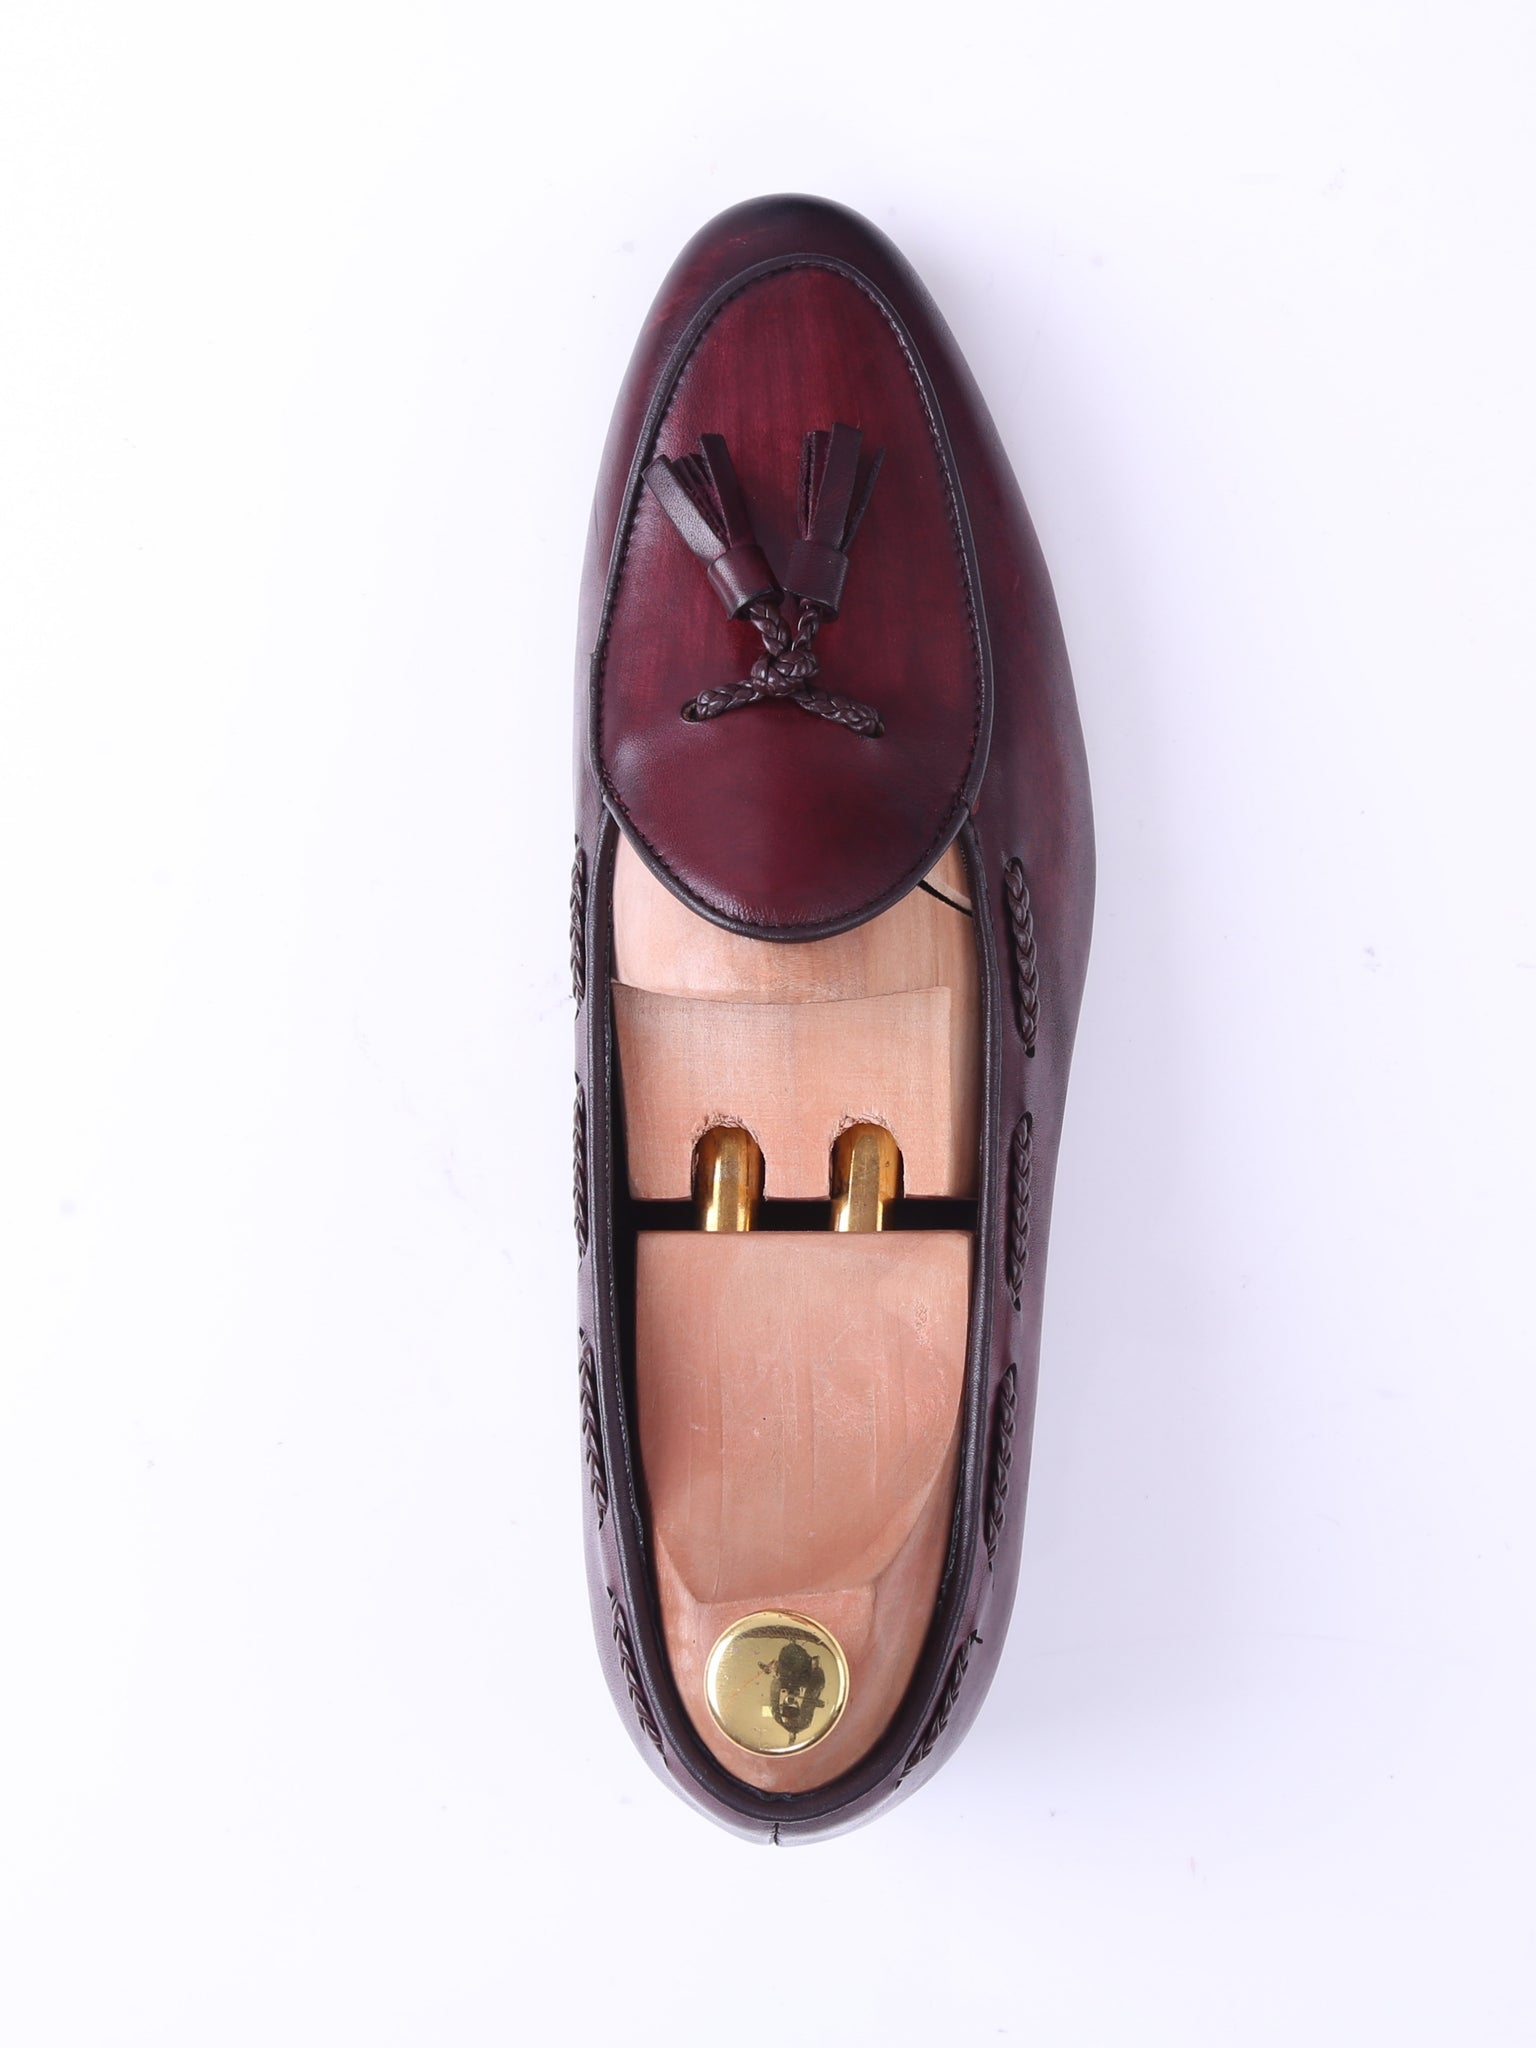 Shoes Belgian Loafer - Red Burgundy With Tassel (Hand Painted Patina)